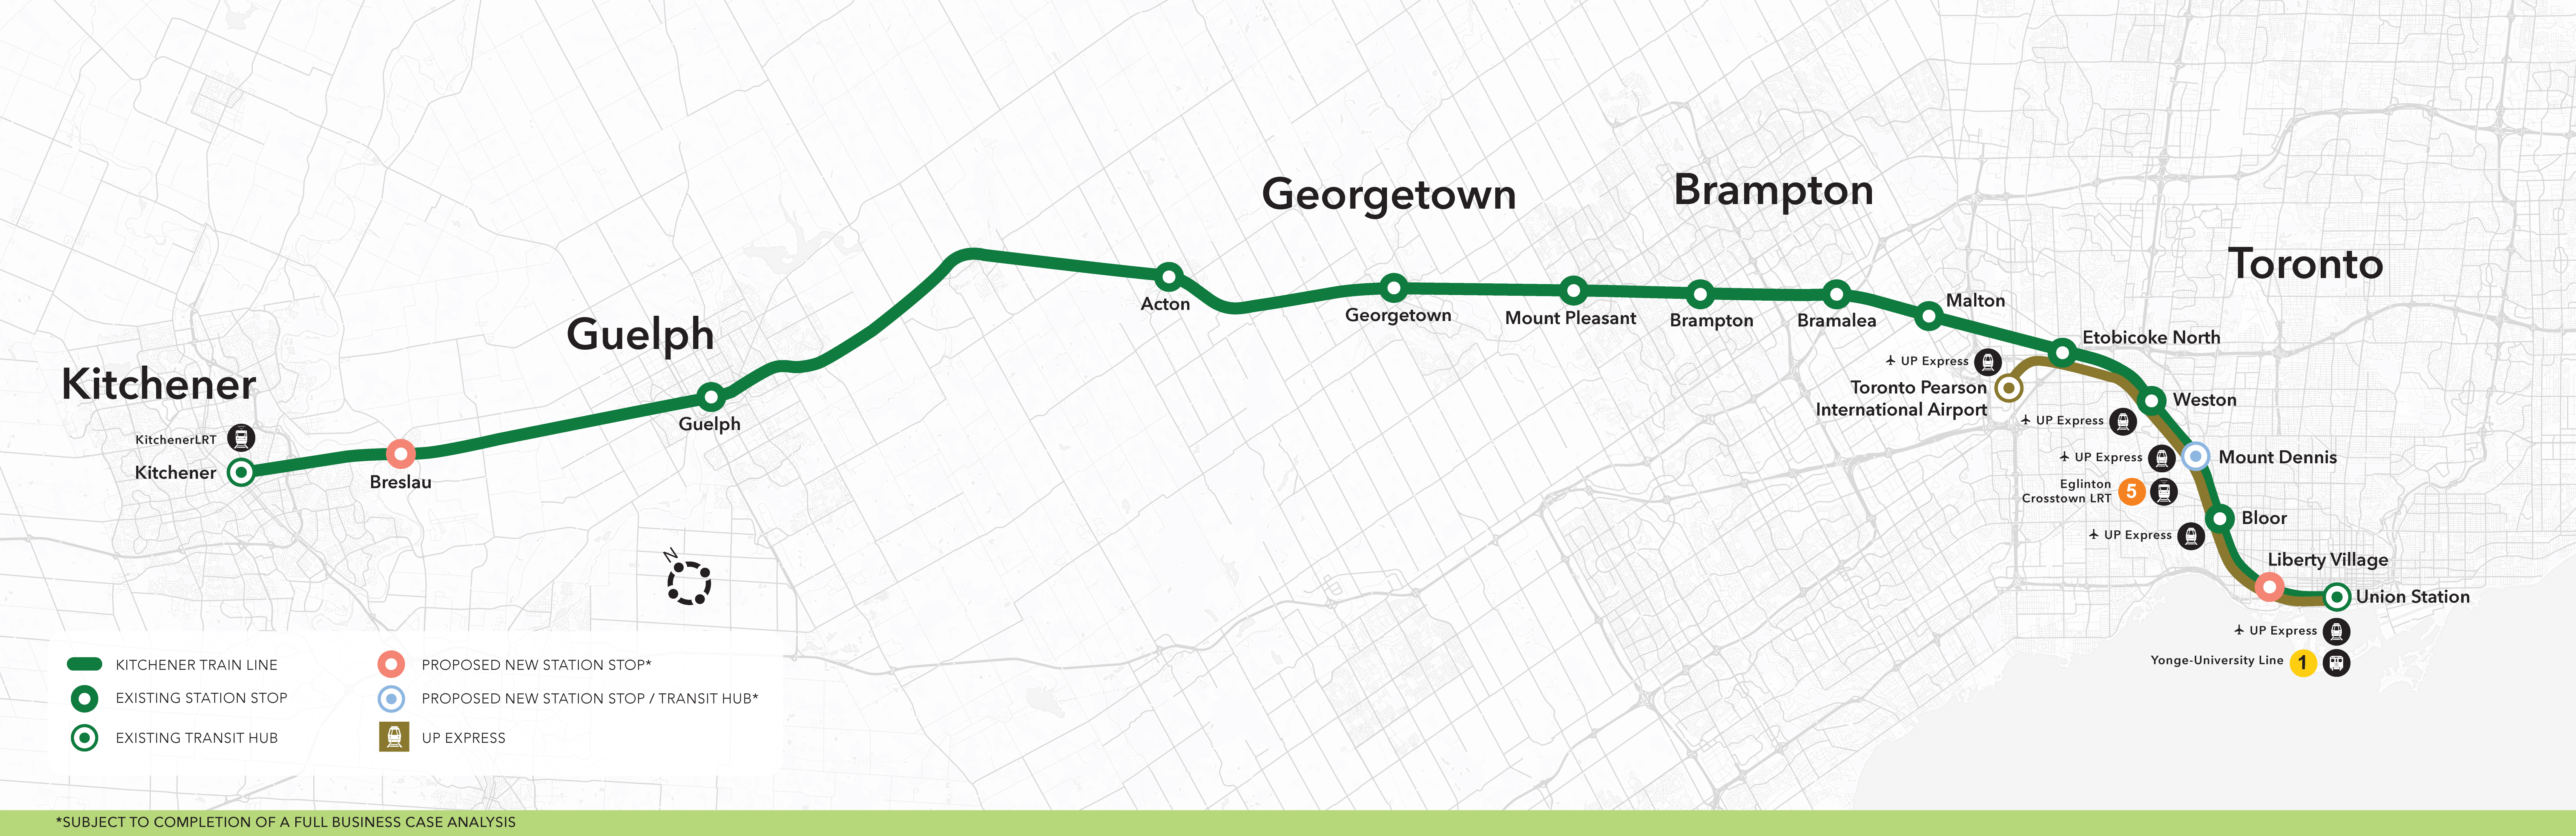 Metrolinx: For a Greater Region - Kitchener GO Expansion